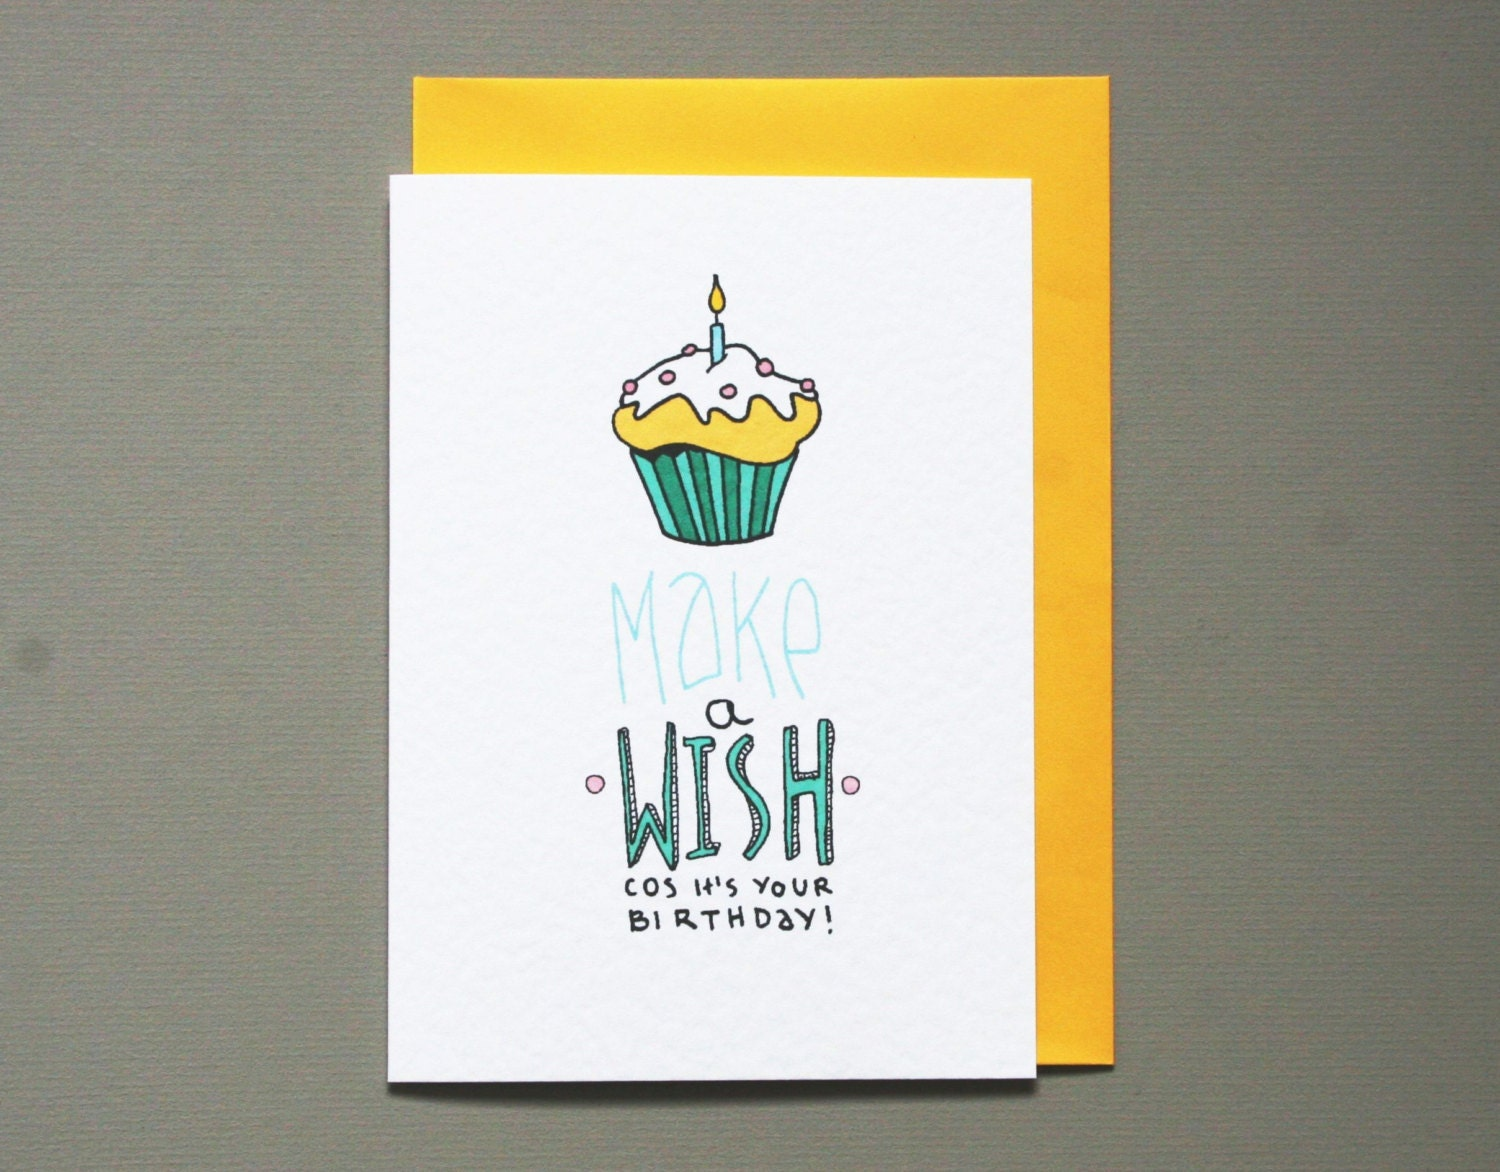 Cupcake birthday card make a wish birthday card hand drawn zoom bookmarktalkfo Images